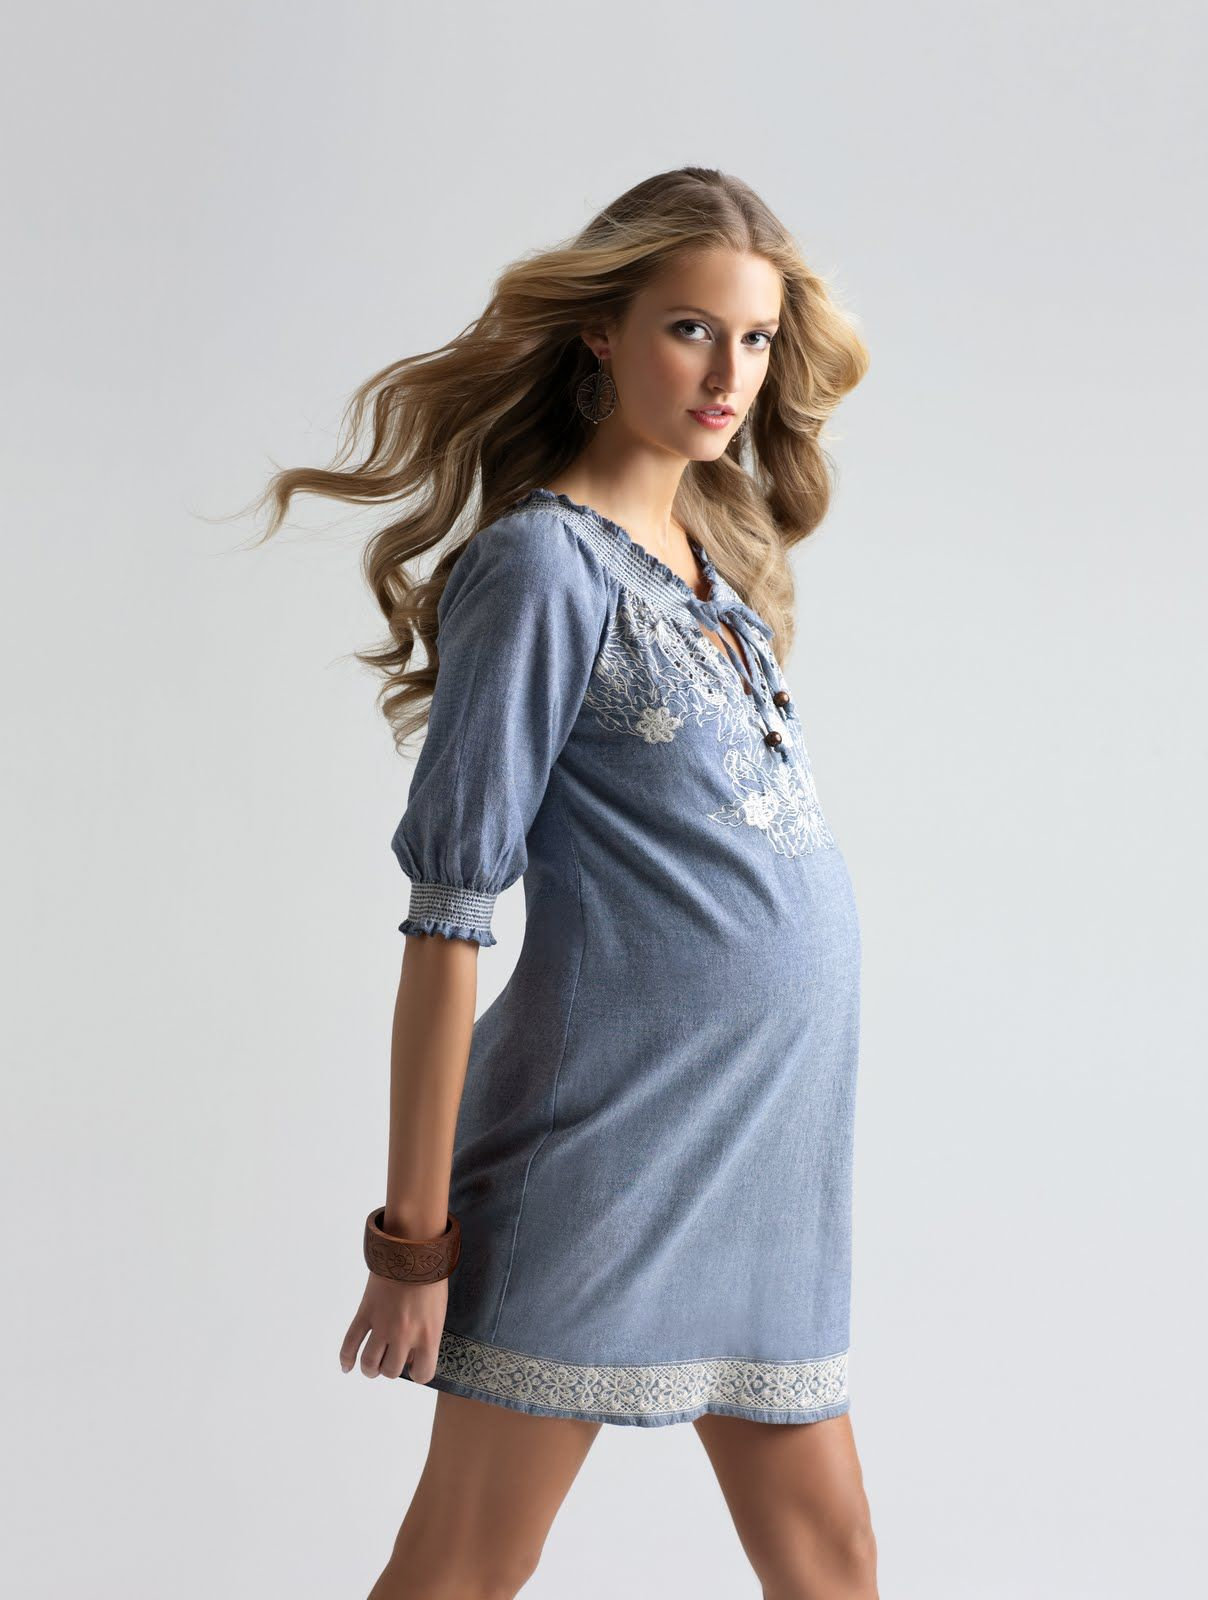 Like all maternity wear, summer maternity clothes should ...